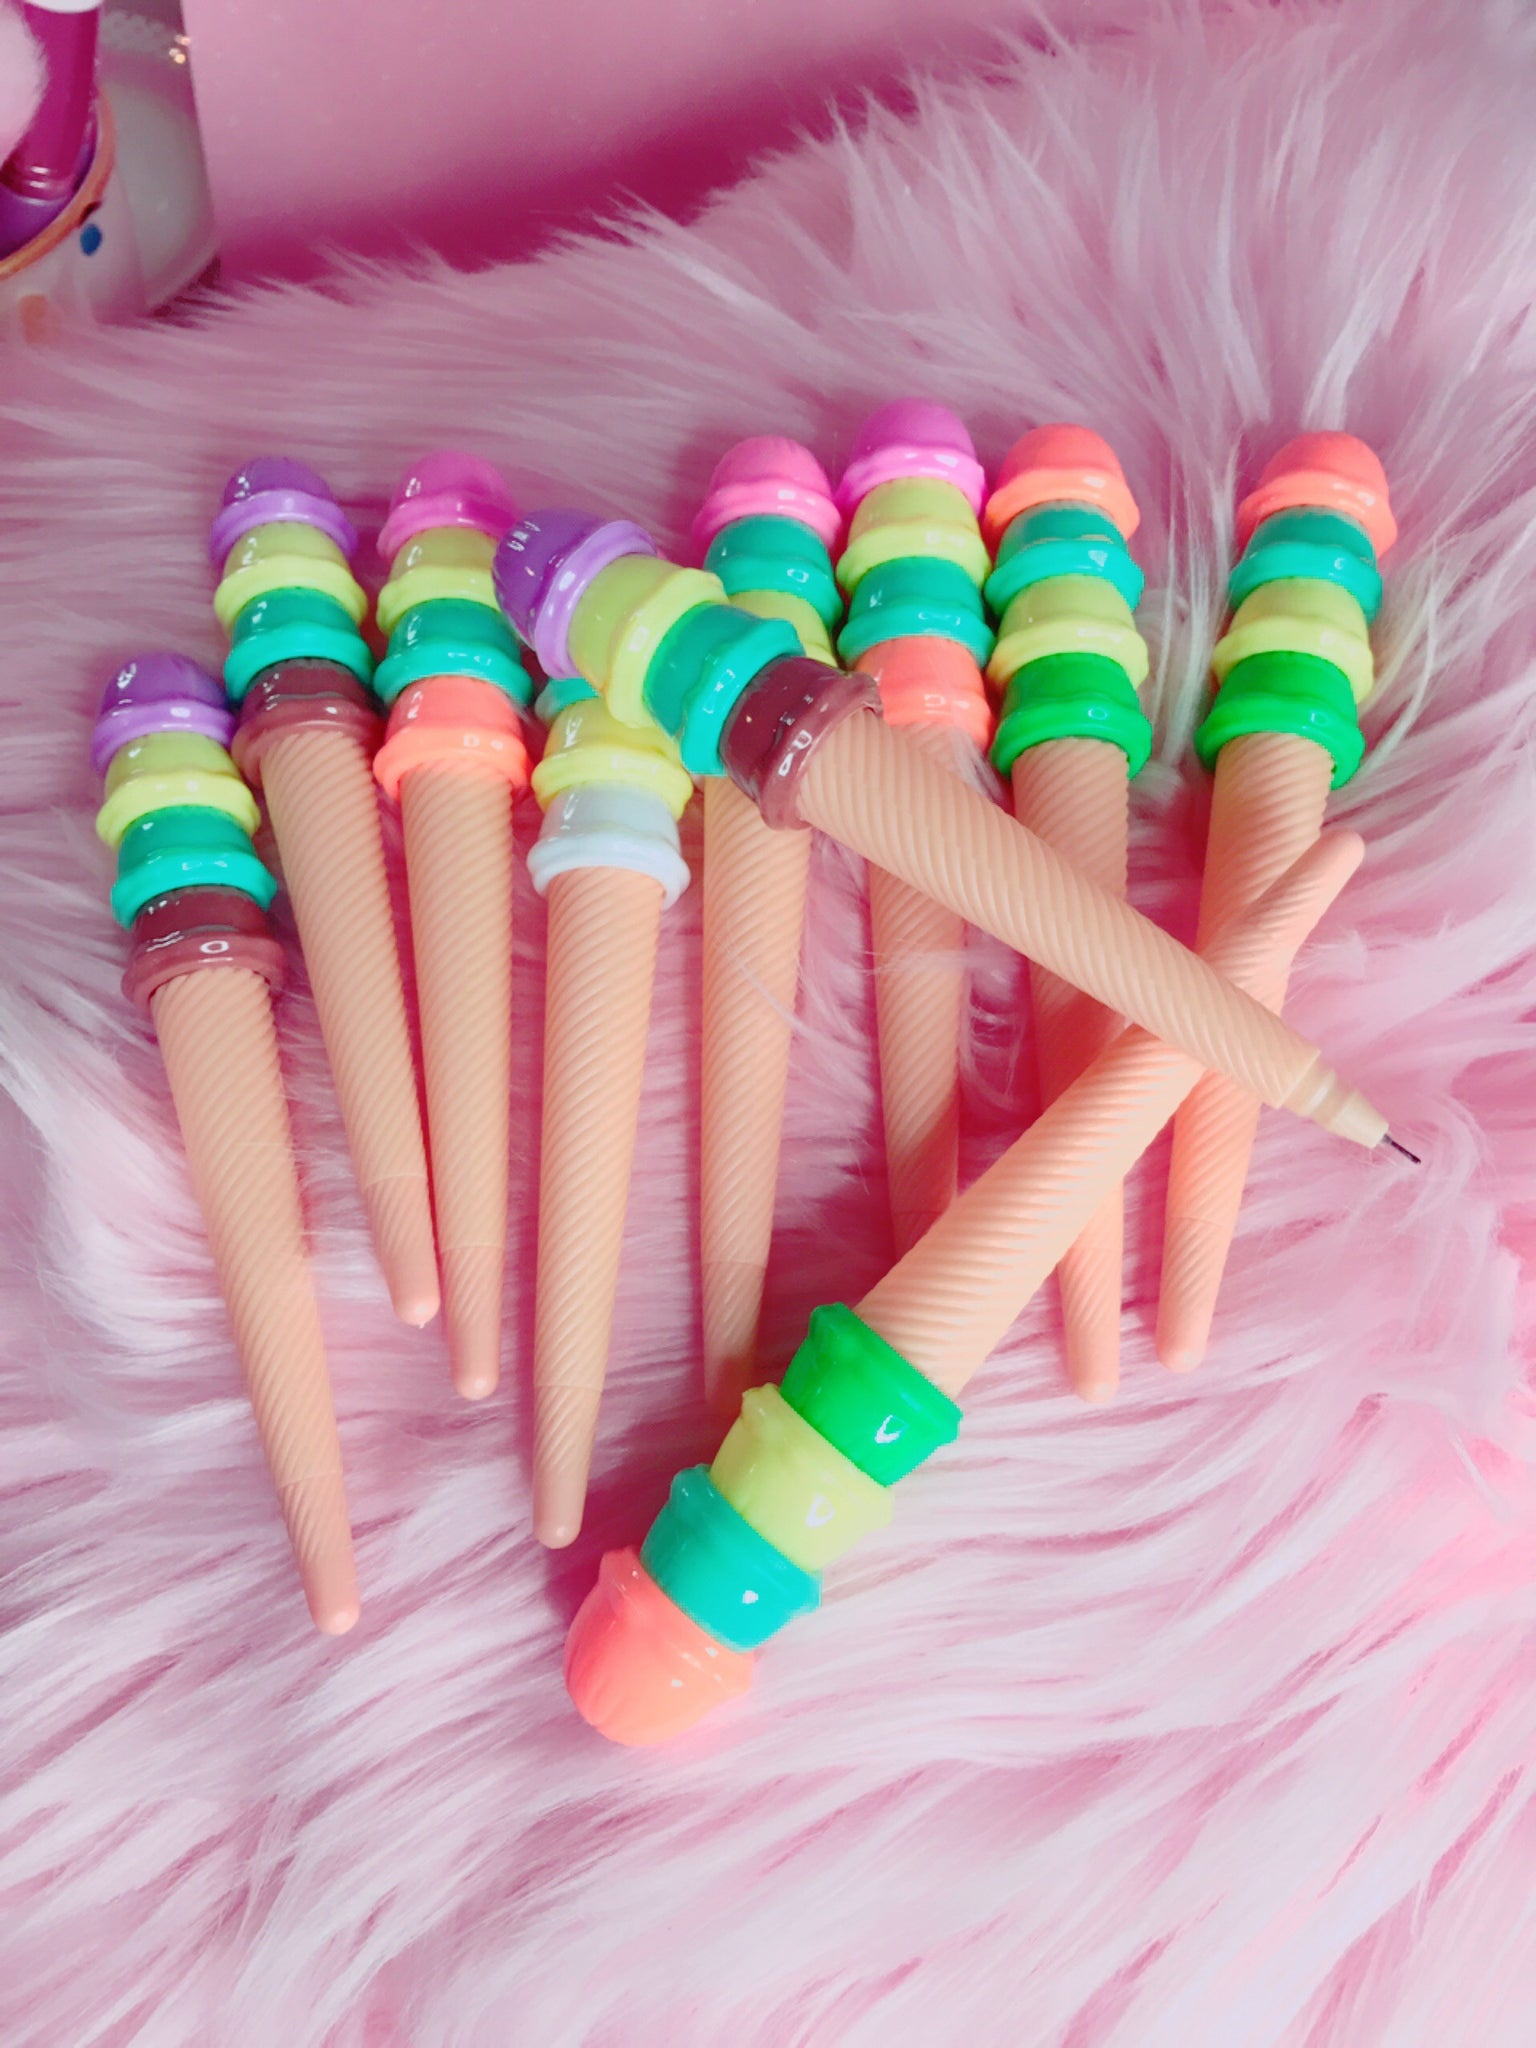 Ice cream gel pens